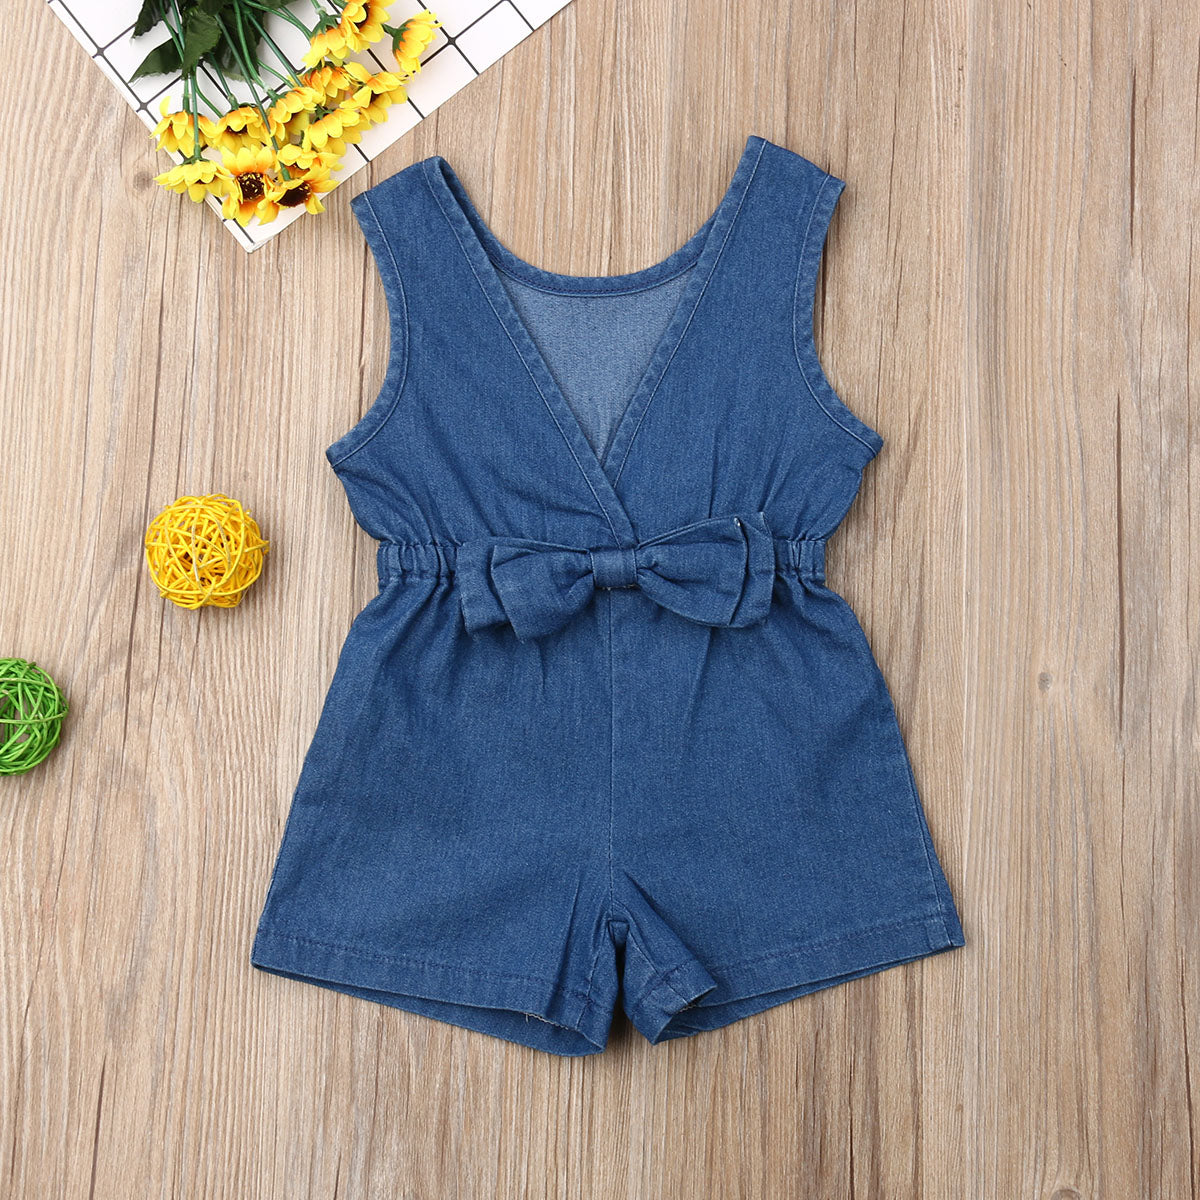 'Dani' Denim Toddler Romper